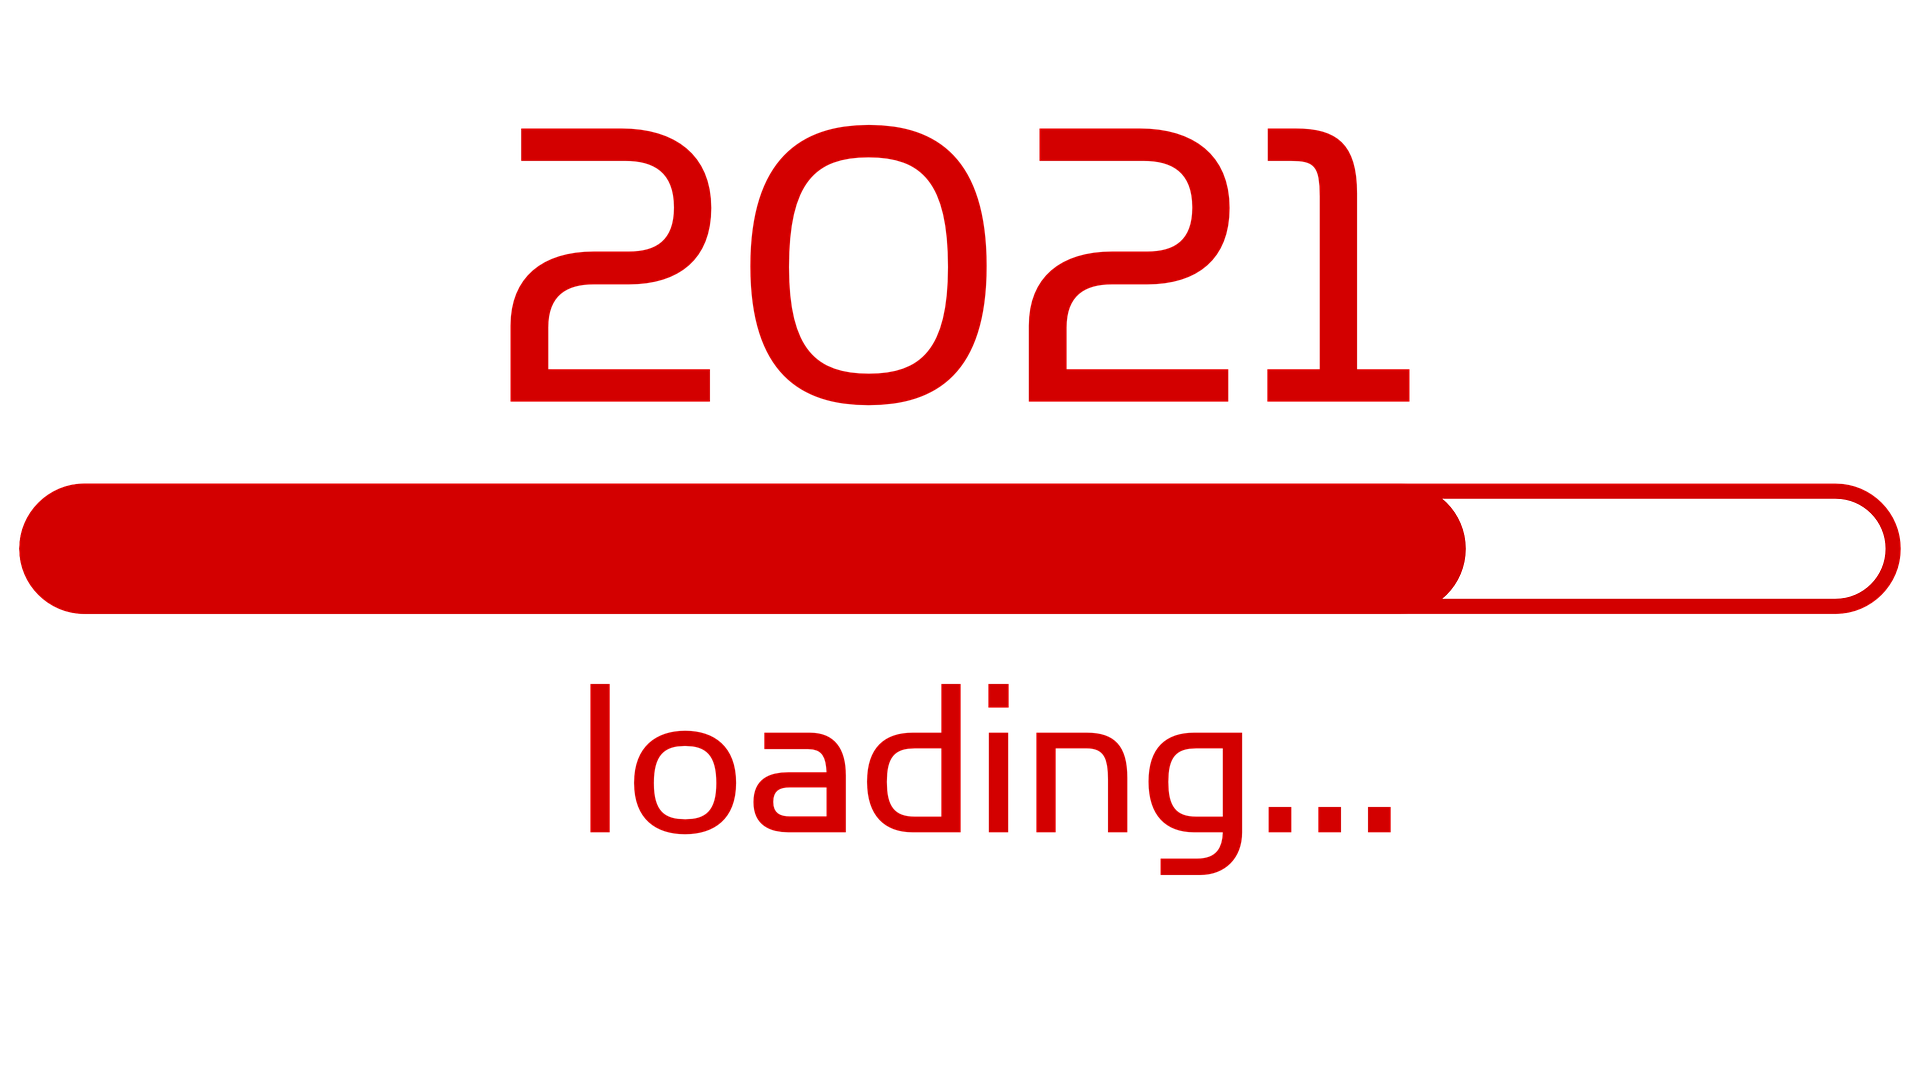 2021 loading png #41575